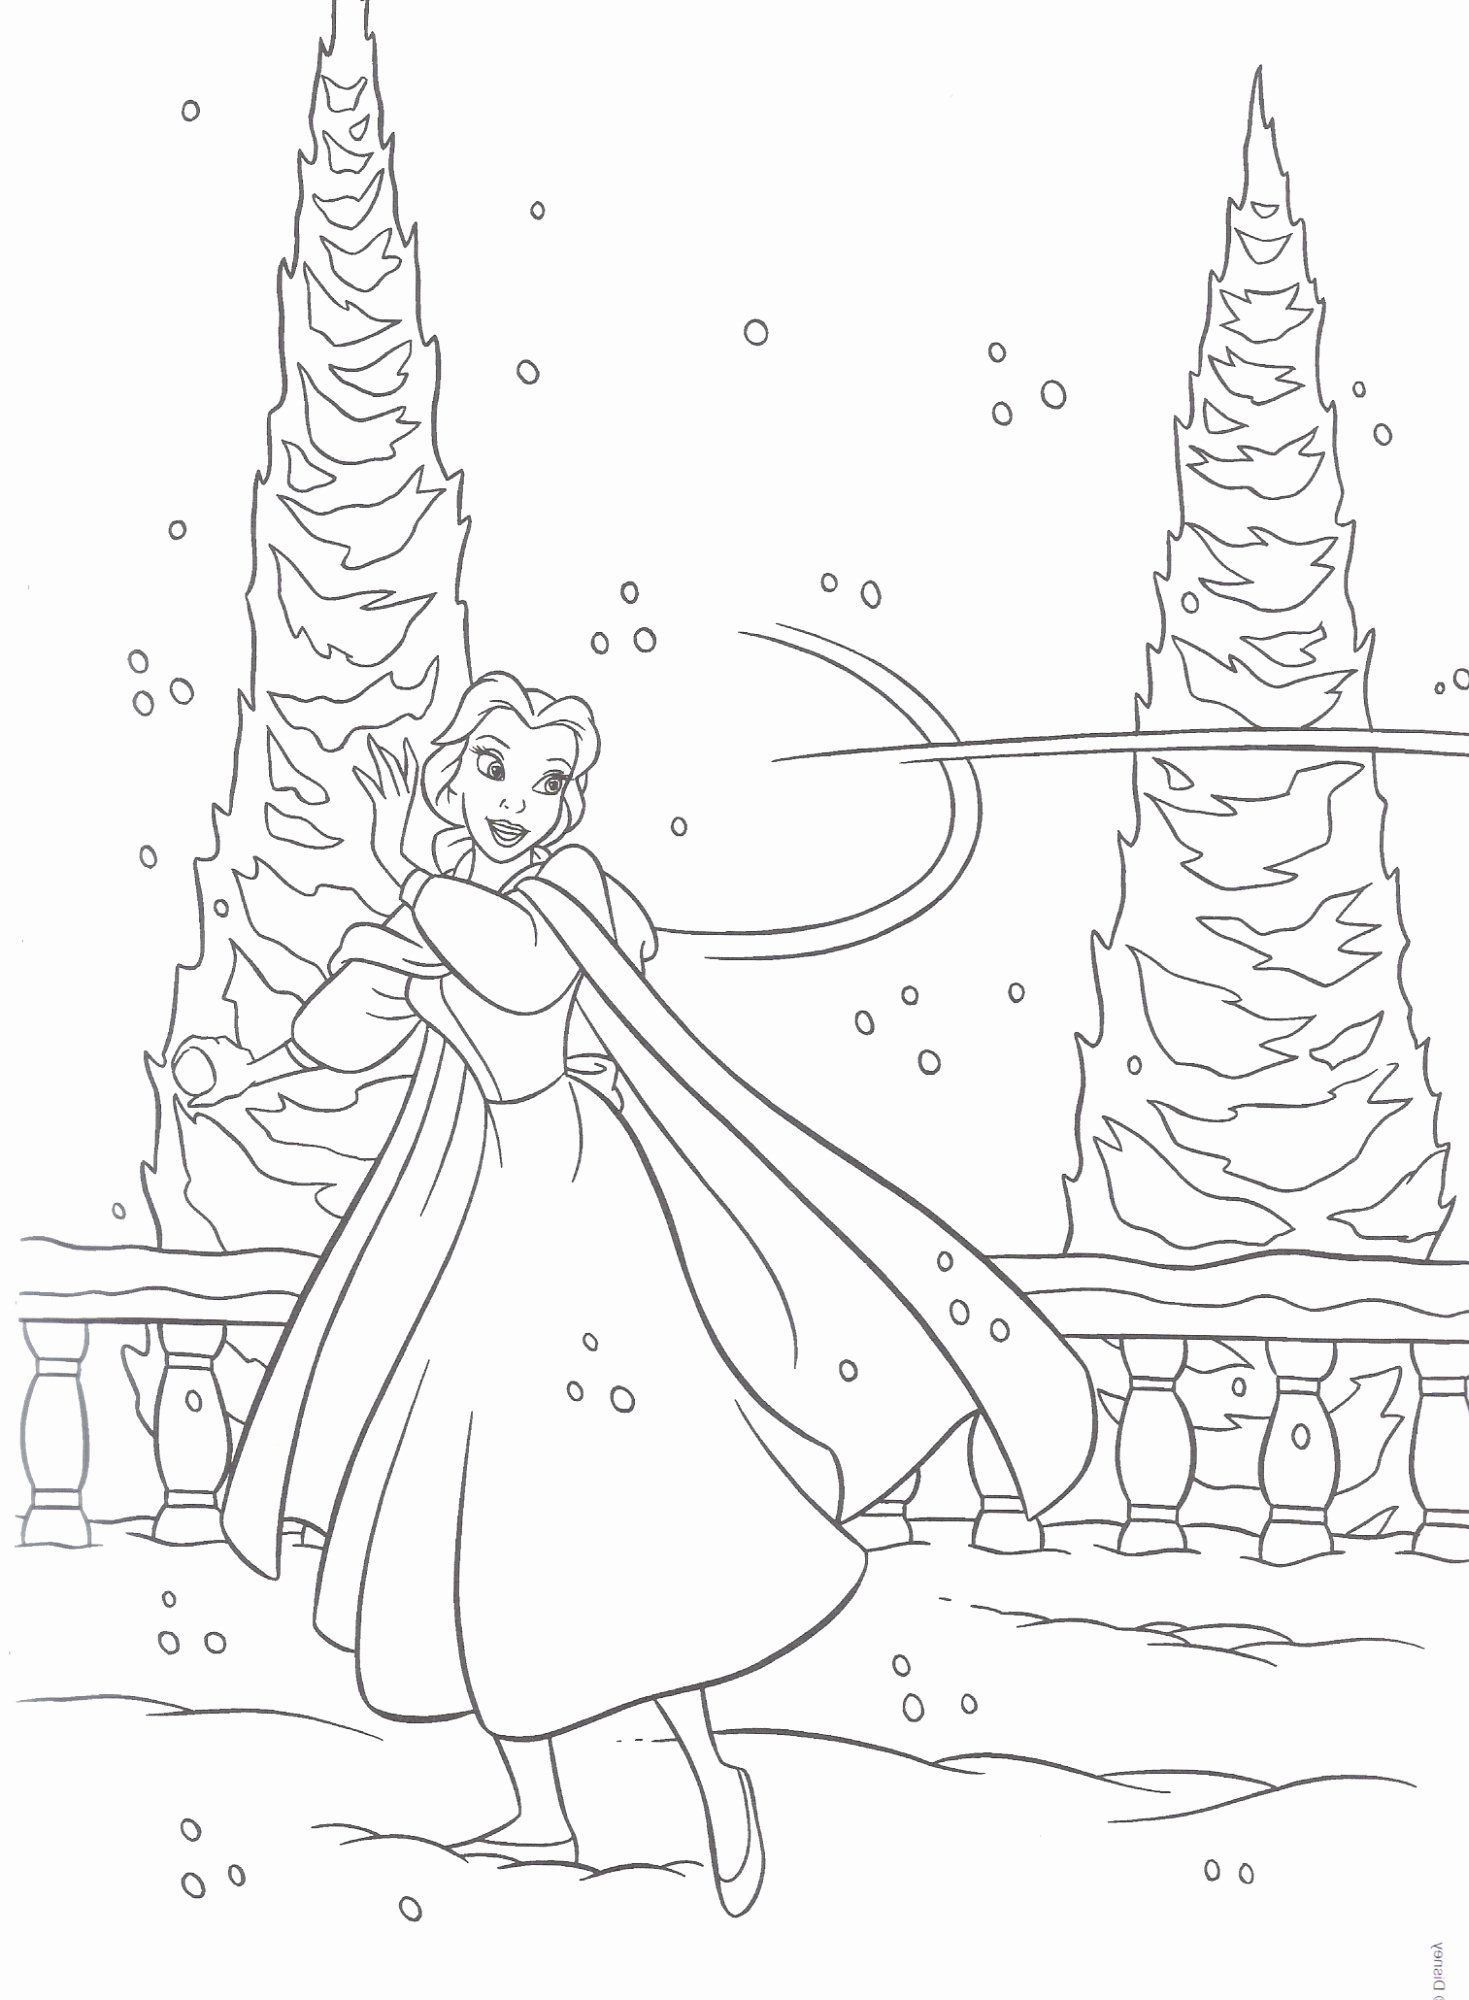 Disney Winter Coloring Pages Unique Disney Winter Coloring Page Timeless Miracle In 2020 Princess Coloring Pages Cartoon Coloring Pages Disney Princess Coloring Pages